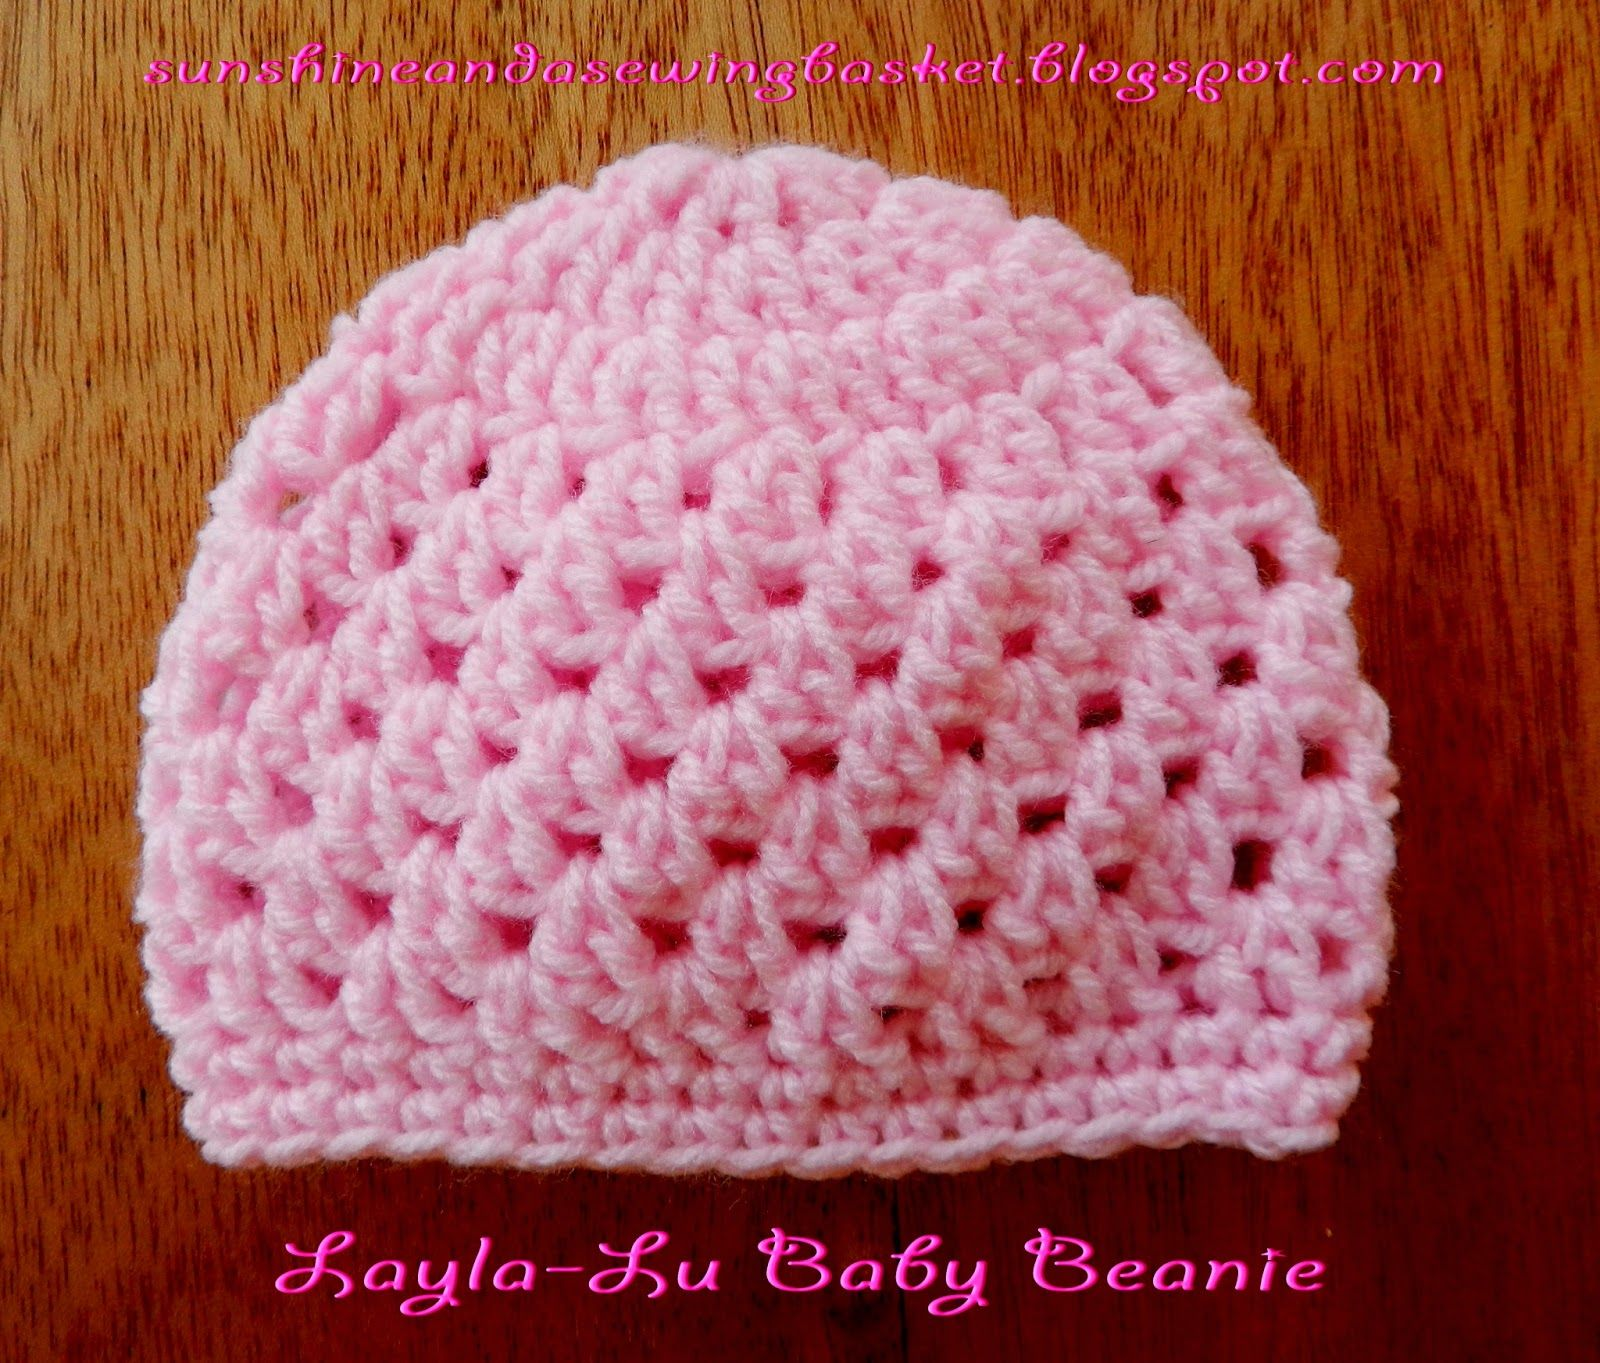 Layla-Lu Beanie As promised, here is the pattern for the last beanie ...